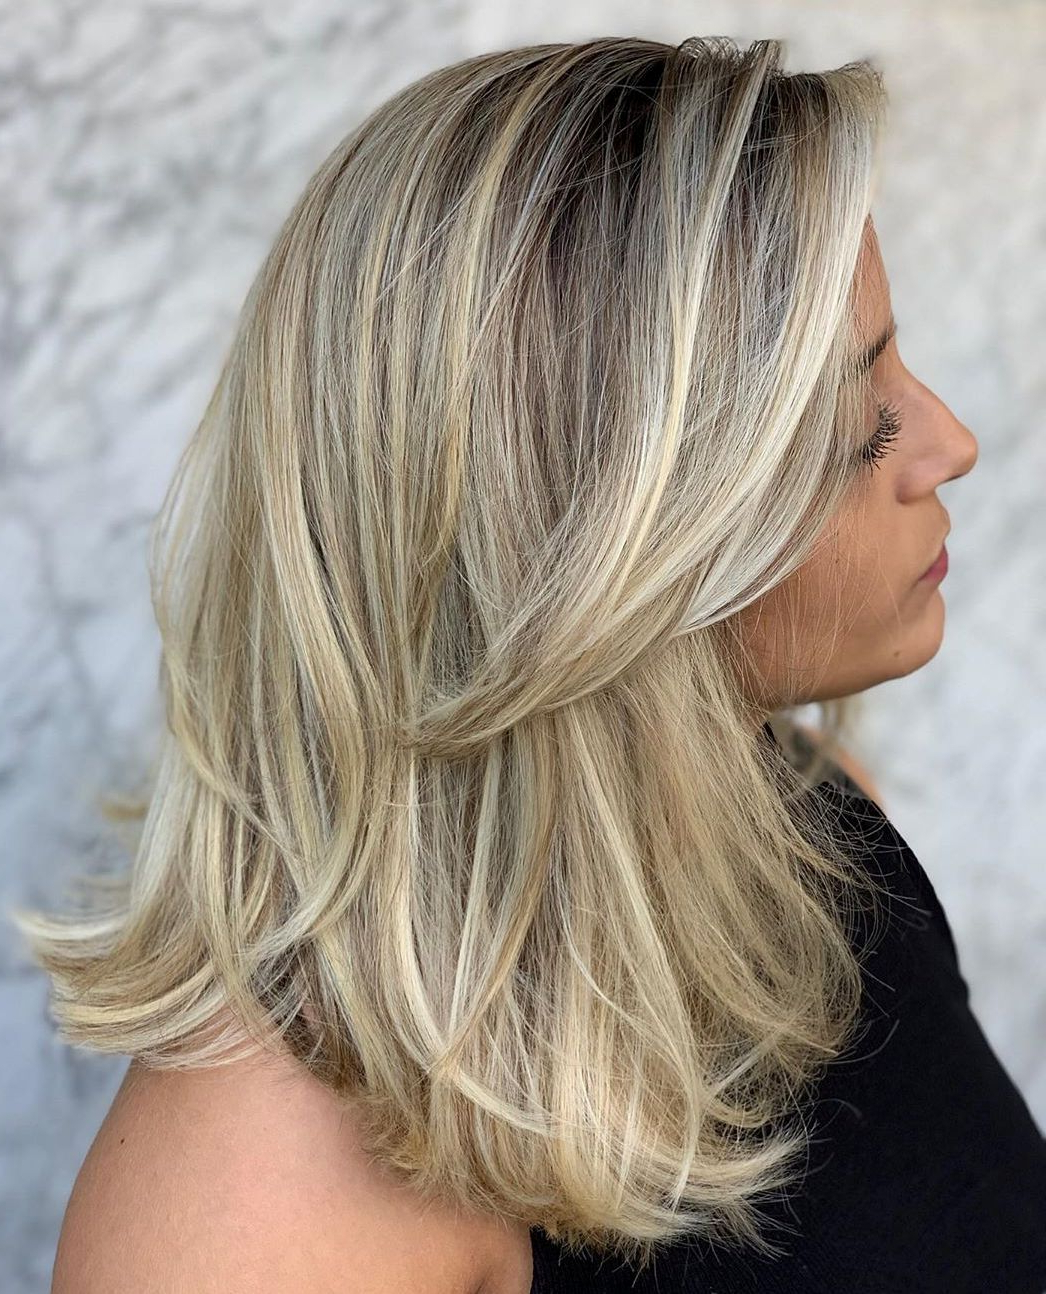 40 Medium Length Hairstyles For Thick Hair ⋆ Palau Oceans Within Long Razored Shag Haircuts With Balayage (View 5 of 20)